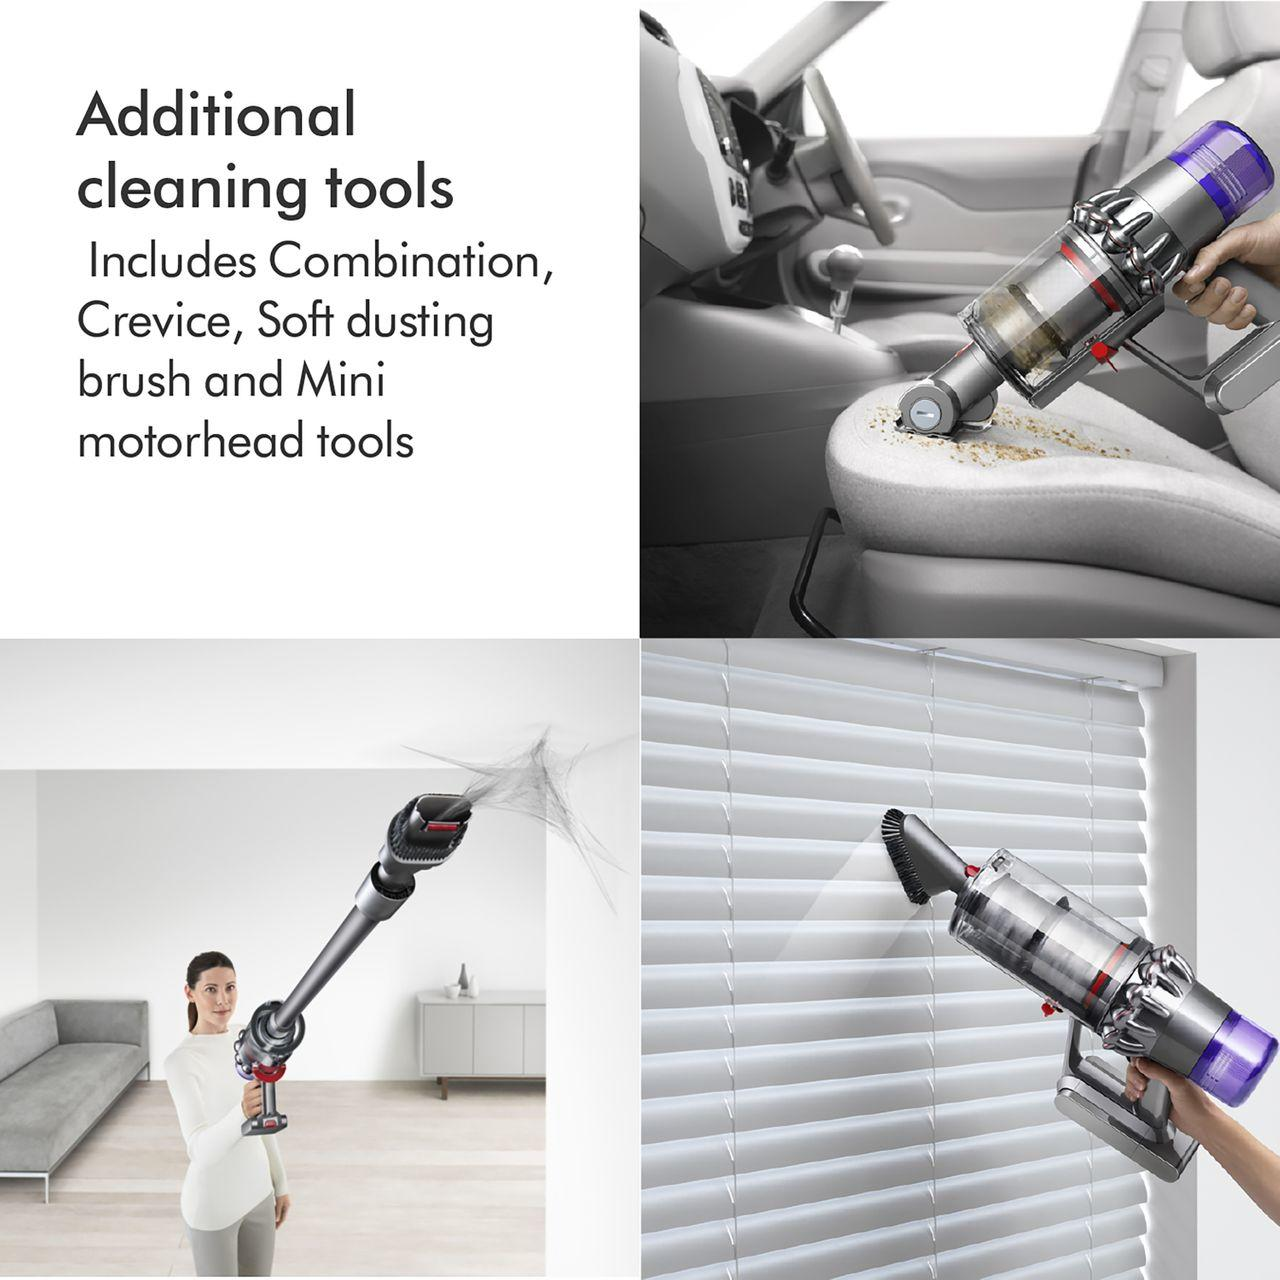 Dyson V11 Absolute Plus Cordless Vacuum Cleaner with up to 60 Minutes Run Time